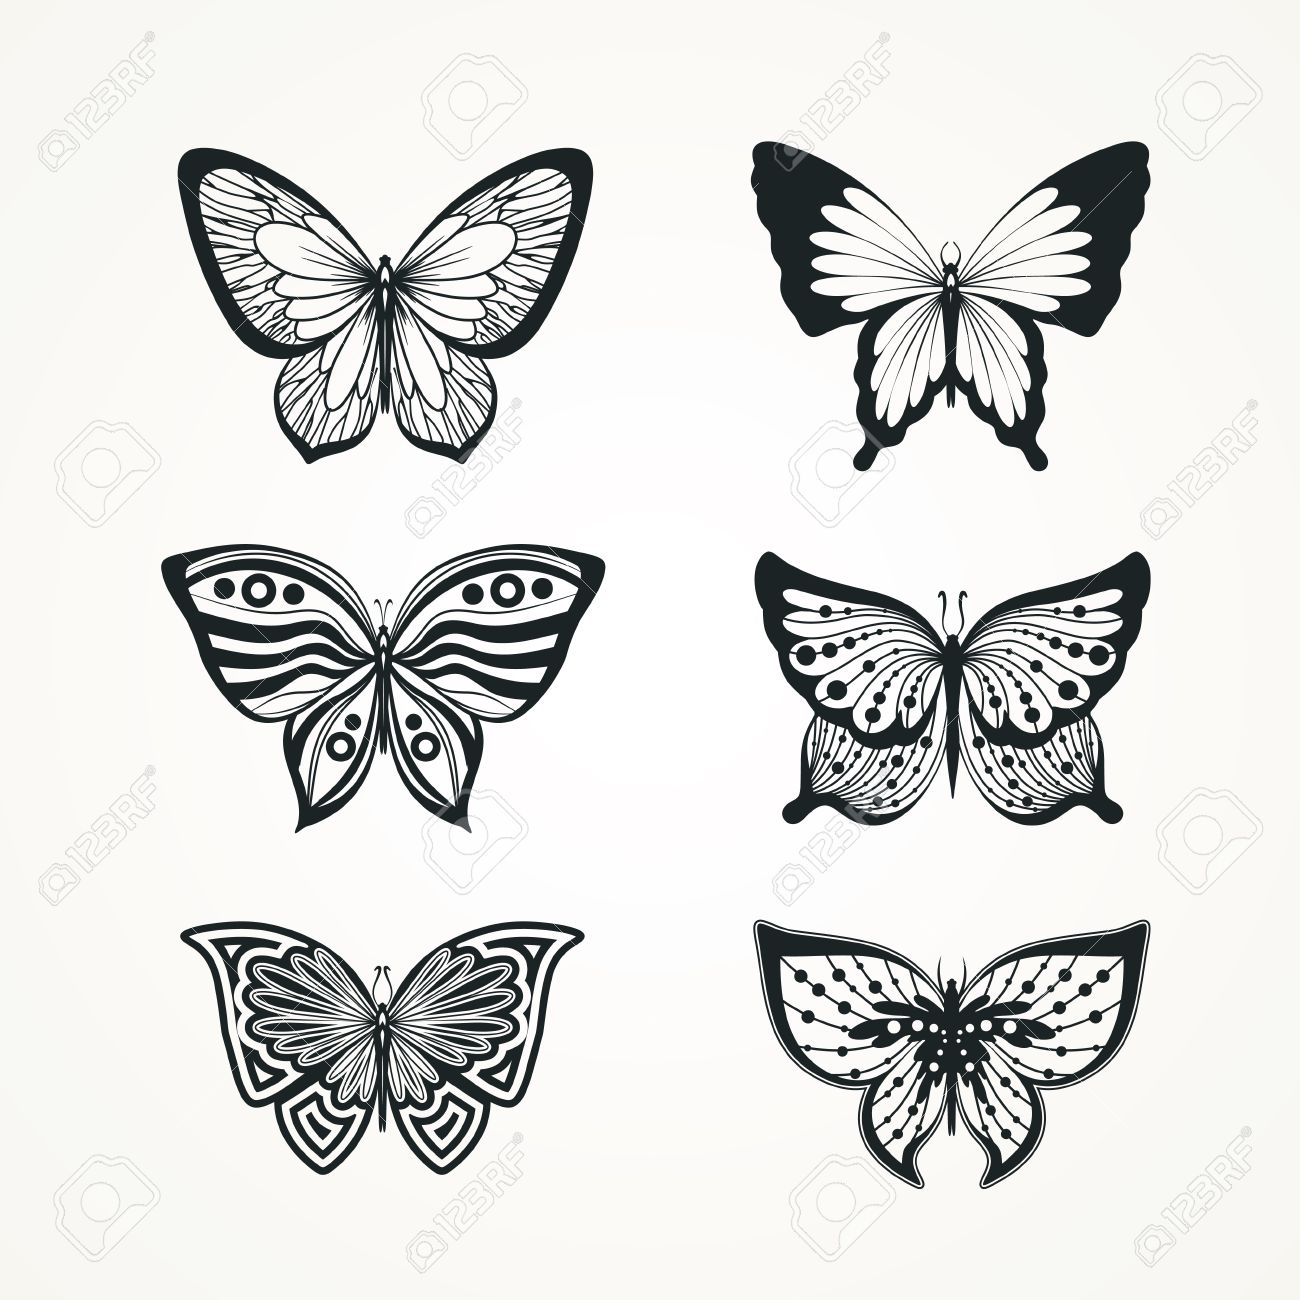 56bb2fce4d222 Collection Of Stylized Butterfly Tattoo Royalty Free Cliparts ...